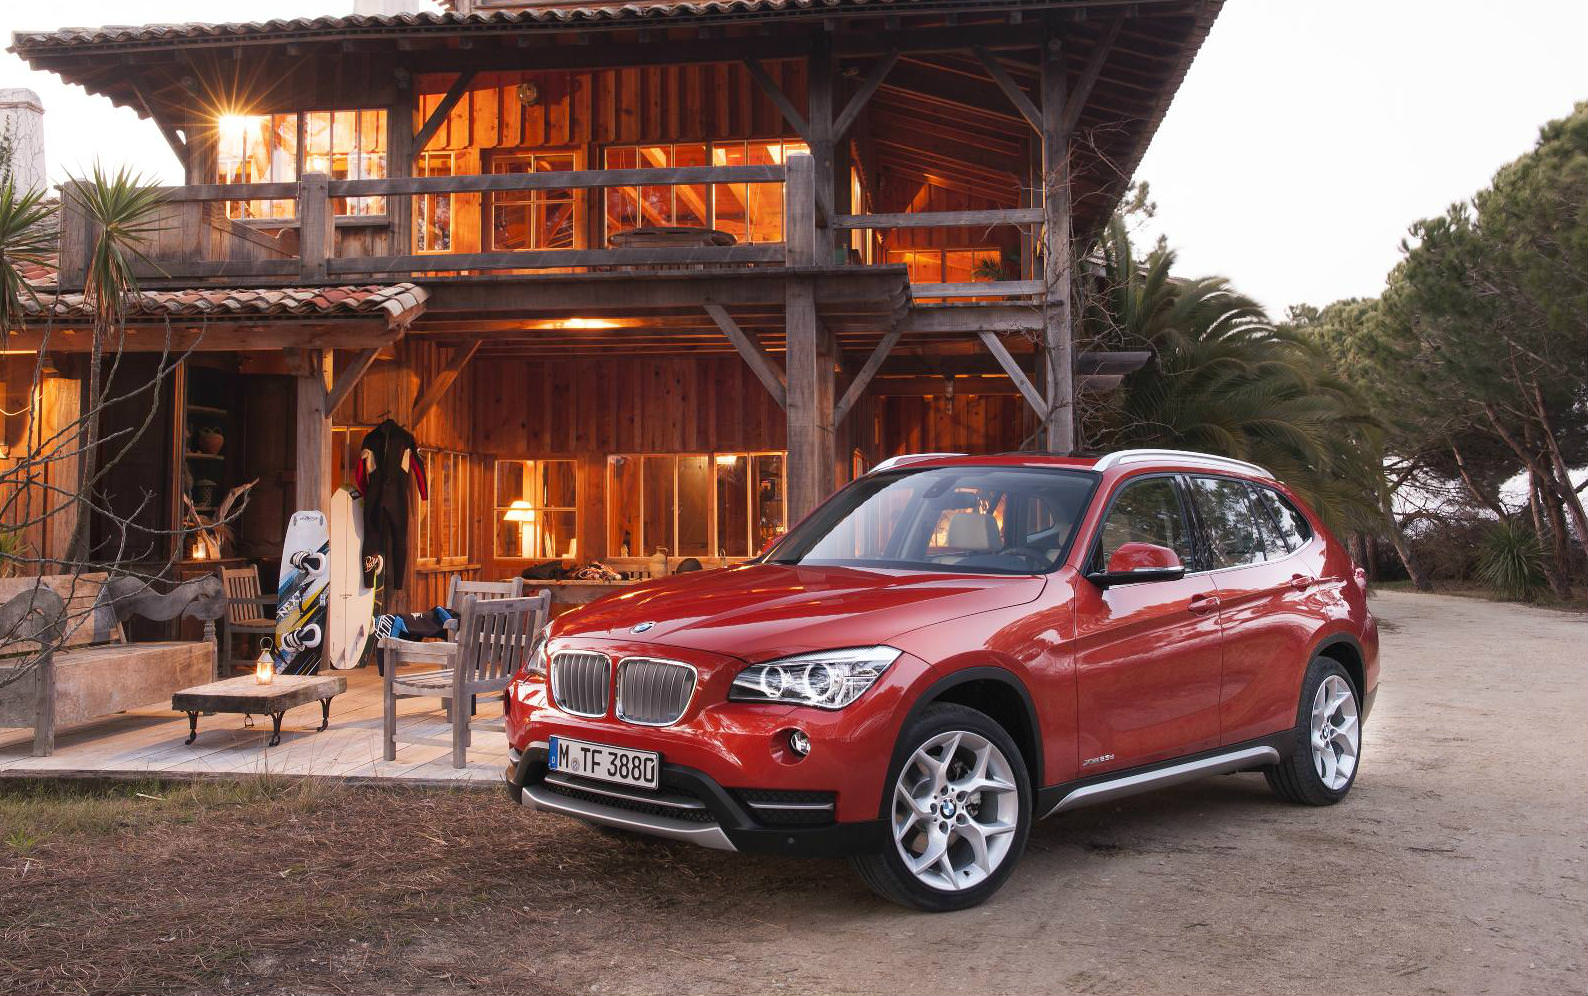 Guide to used SUVs with panoramic sunroof - A Red BMW X1